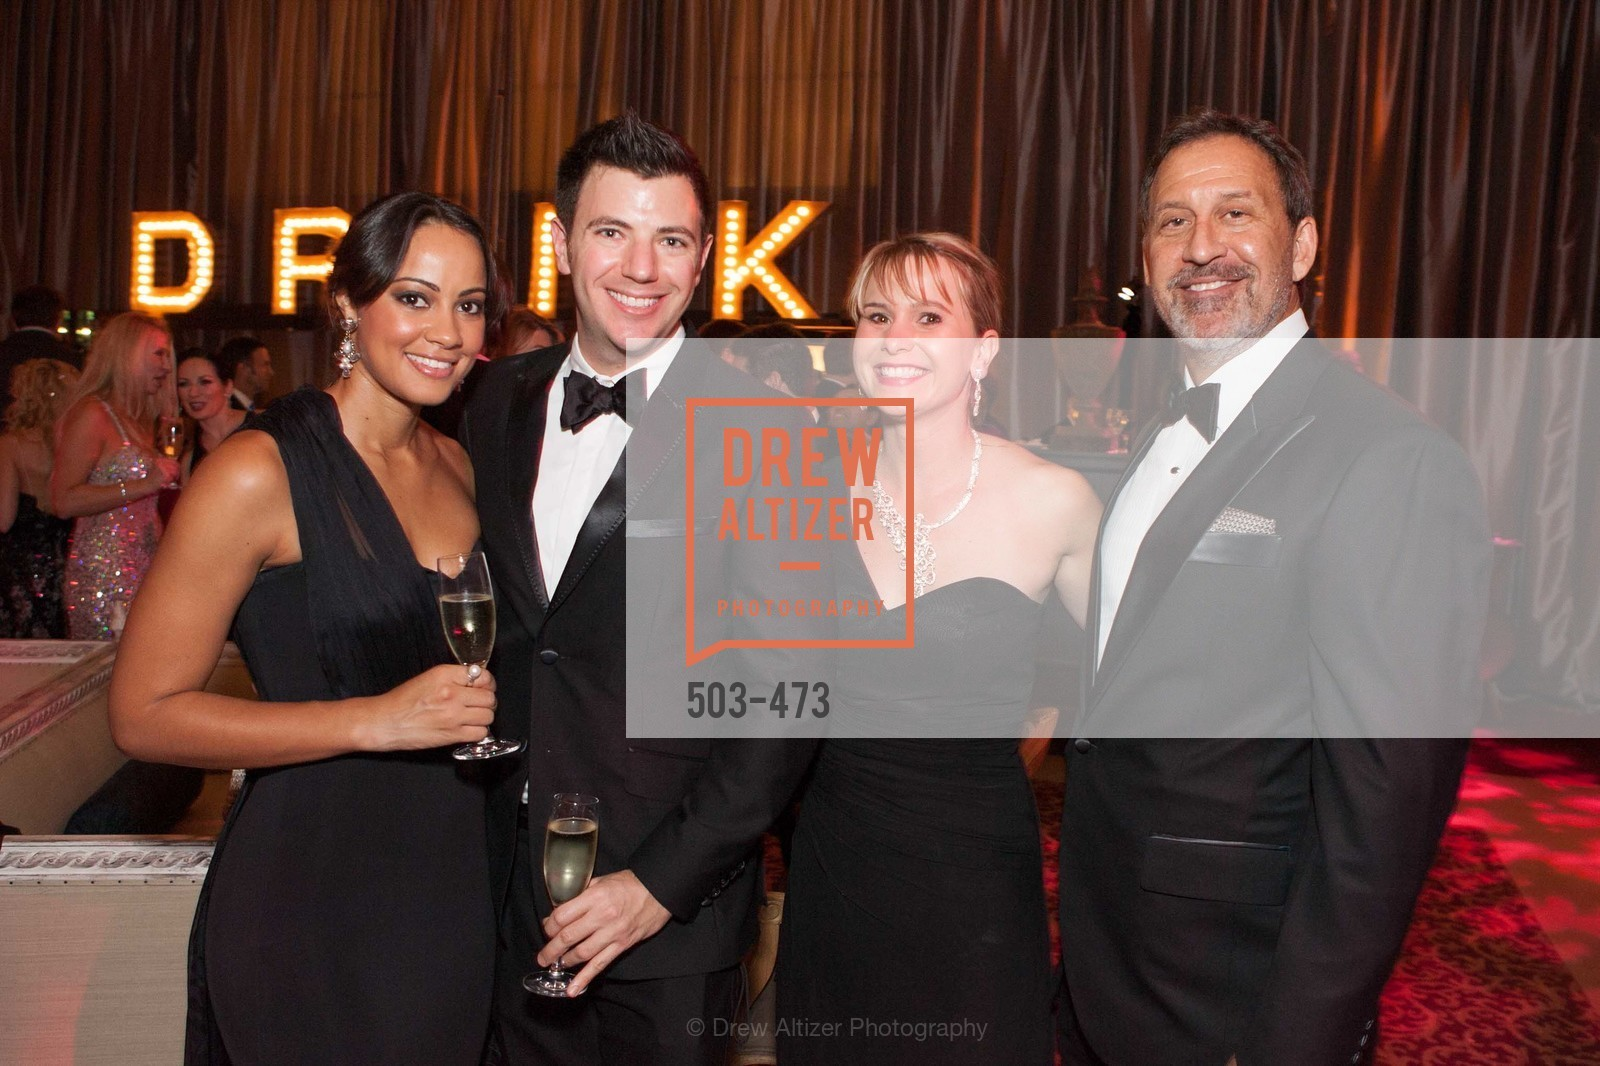 Rachel Cloy, Isaac Hall, Kelly Cramer, Steve Gomberg, ENCORE! at San Francisco BALLET'S 2014 Season Opening Night Gala, US. US, January 22nd, 2014,Drew Altizer, Drew Altizer Photography, full-service agency, private events, San Francisco photographer, photographer california